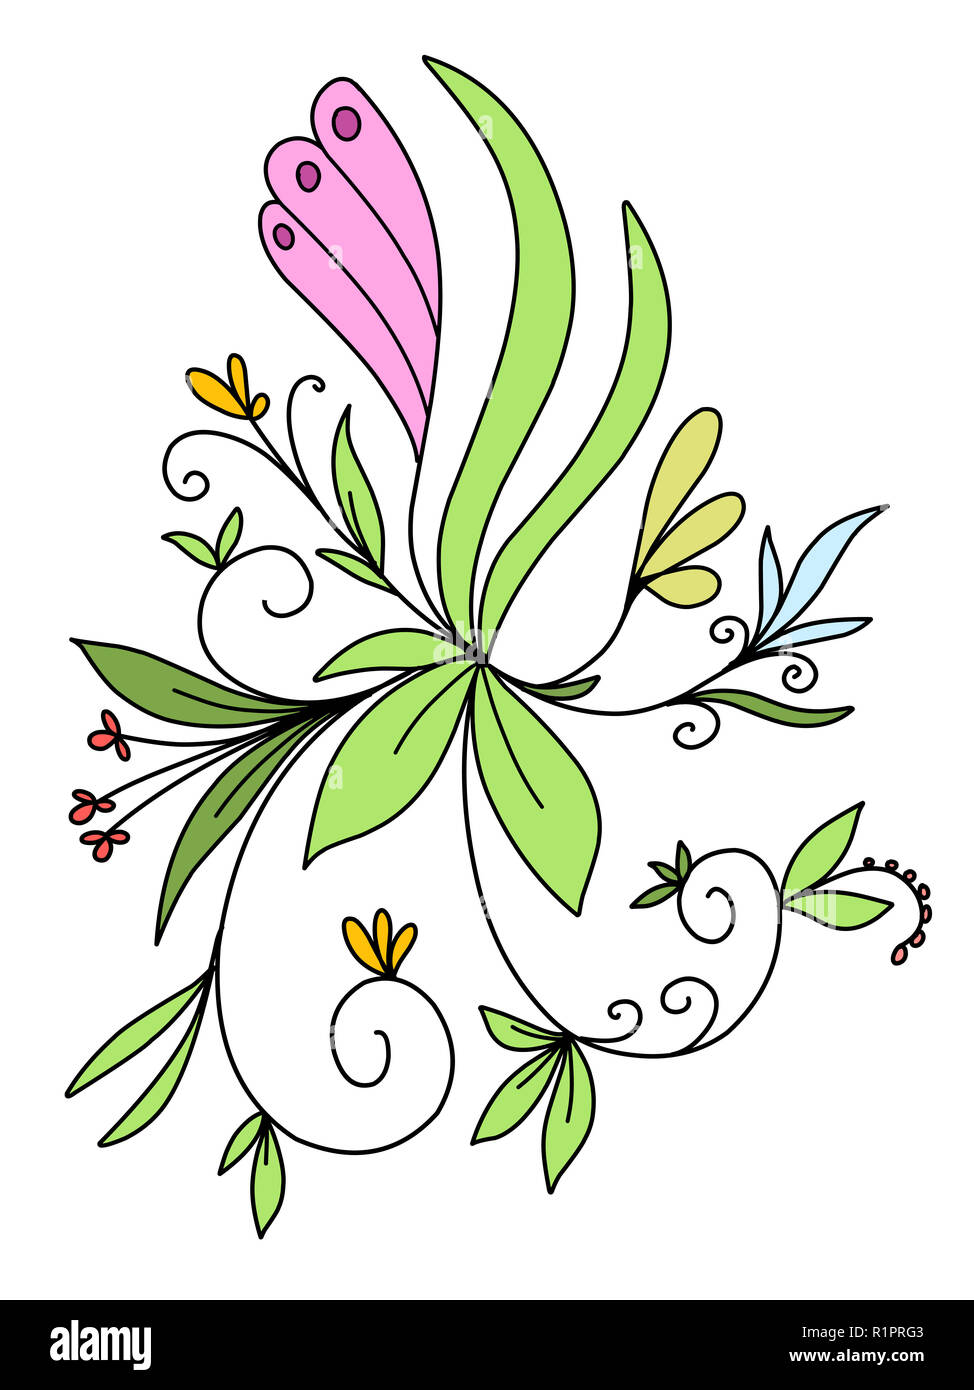 Stock Illustration Abstract Floral Pattern on a White Background - Stock Image